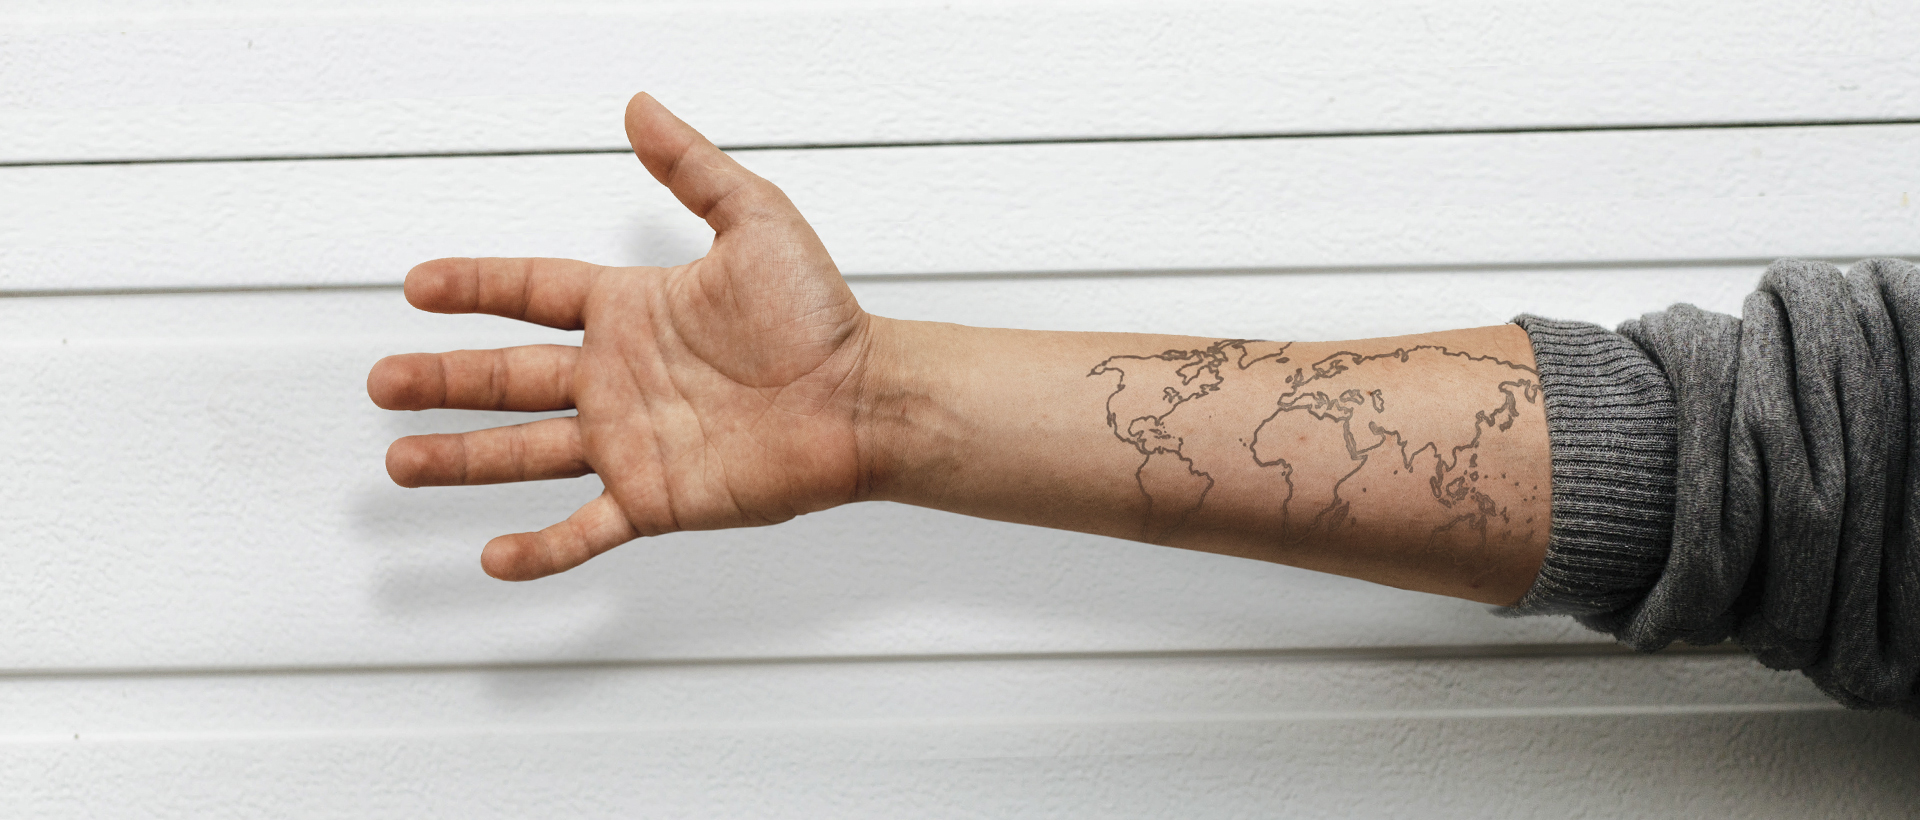 From a Western Missionary to African Pastors - image of a white man's arm reaching out with a world map tattoo